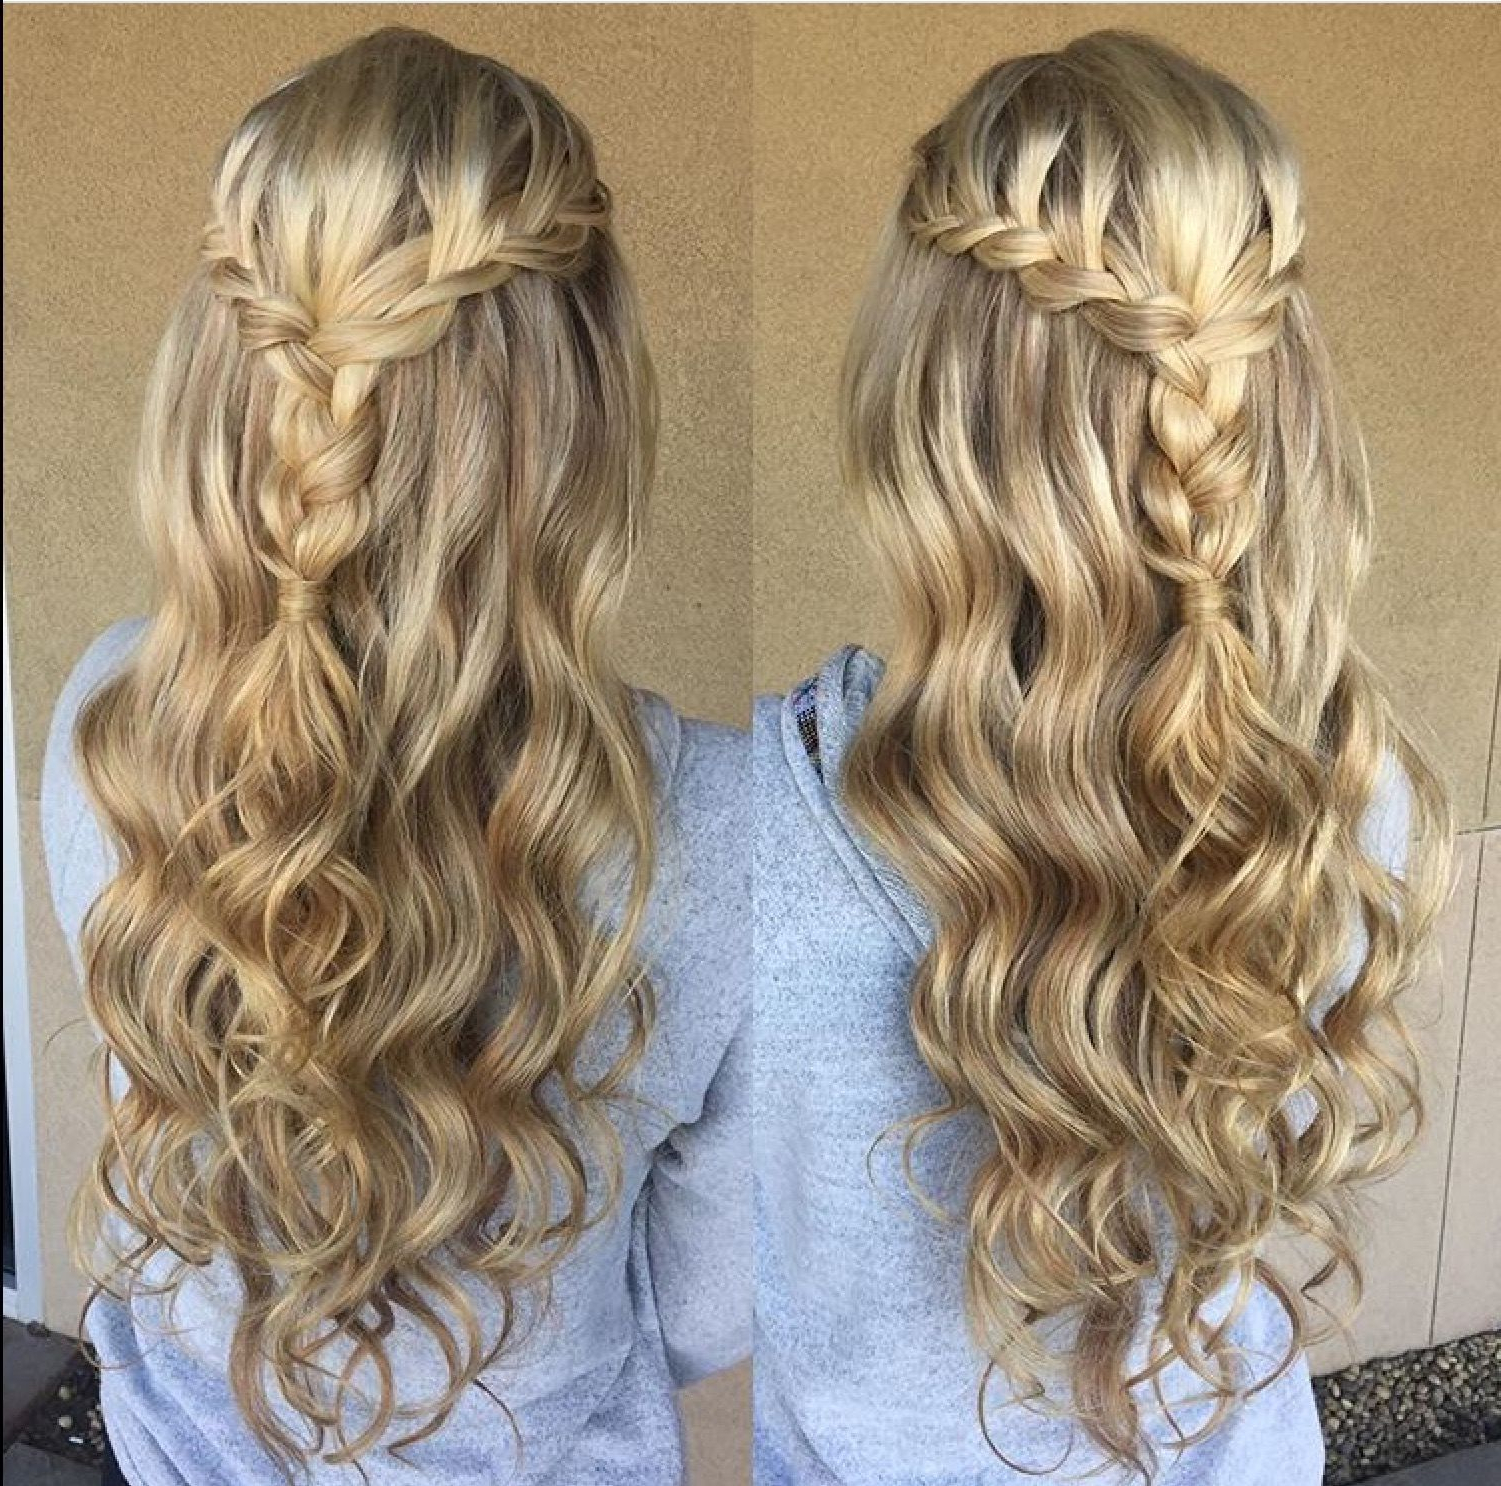 Hairstyles : Blonde Braid Prom Formal Hairstyle Half Up Long Hair Inside Well Liked Blonde Accent Braid Hairstyles (View 10 of 20)